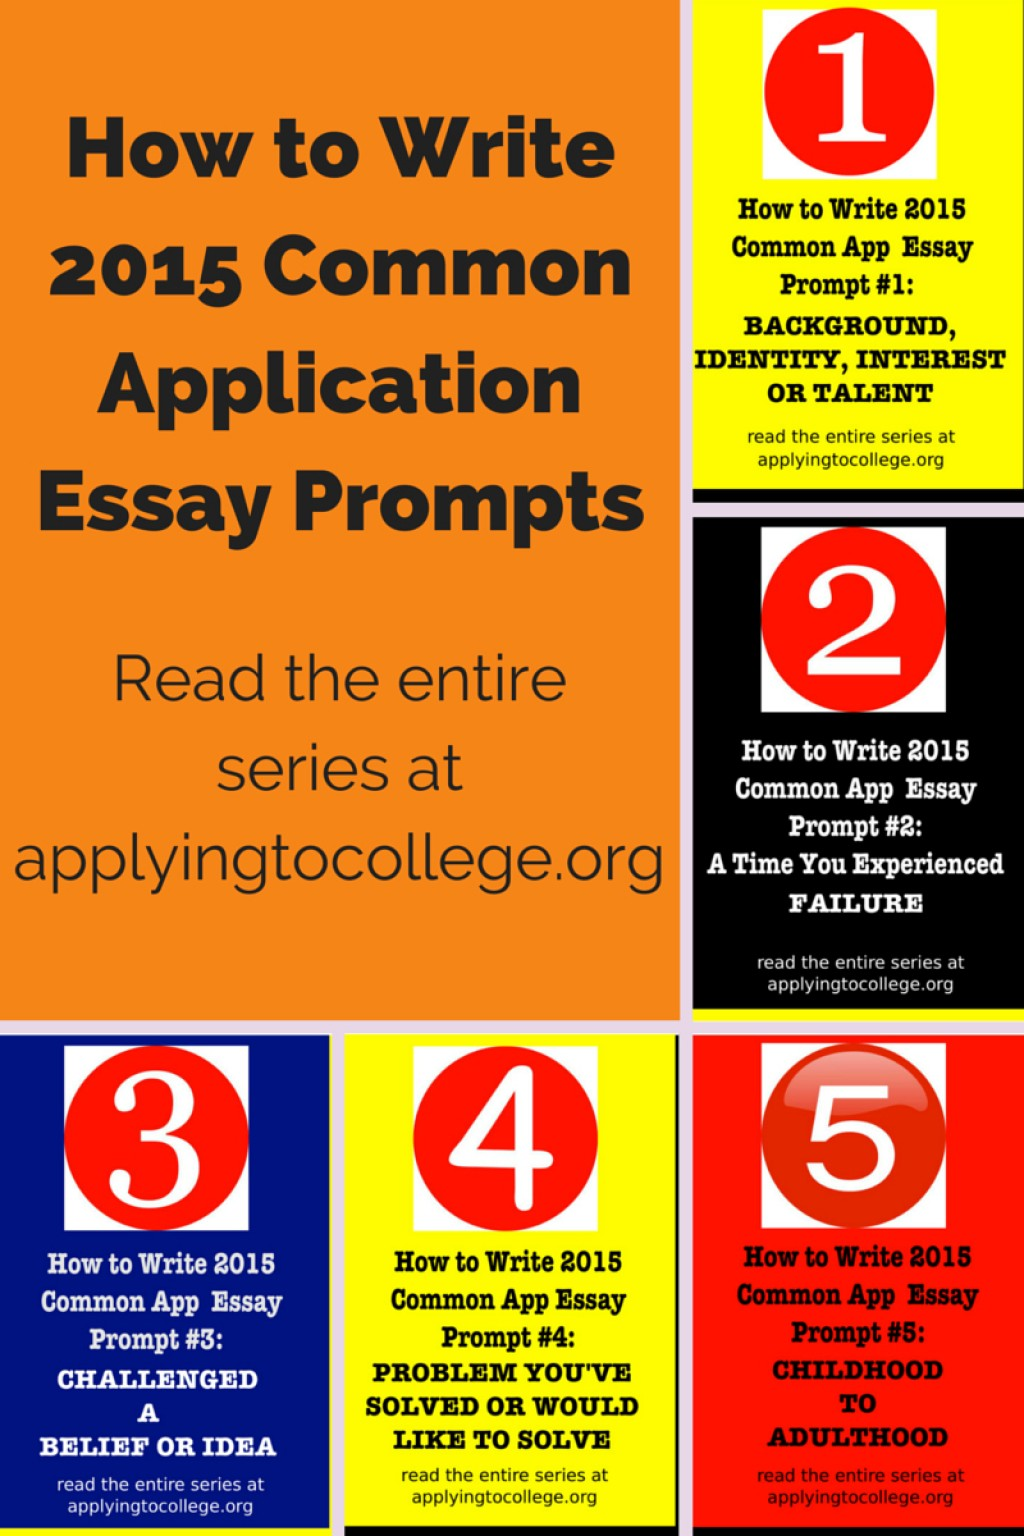 011 Essay Example College Prompts How To Write Common Application Shocking 2015 Admission Large